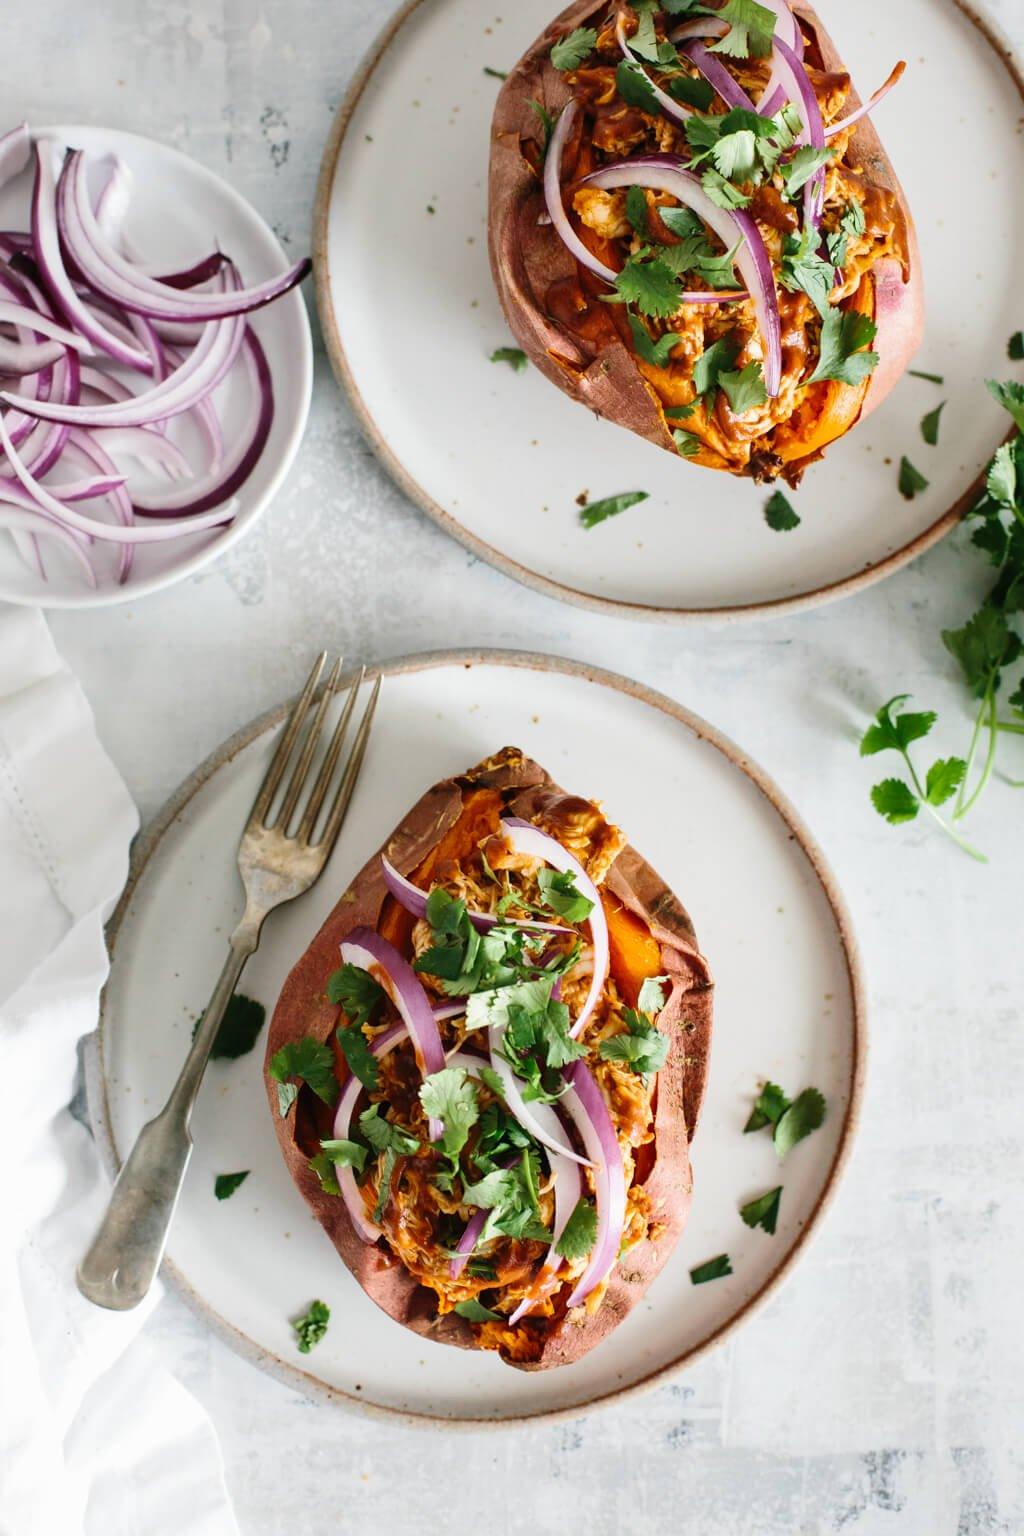 BBQ chicken stuffed sweet potatoes are a healthy, easy, gluten-free, paleo and Whole30 meal.